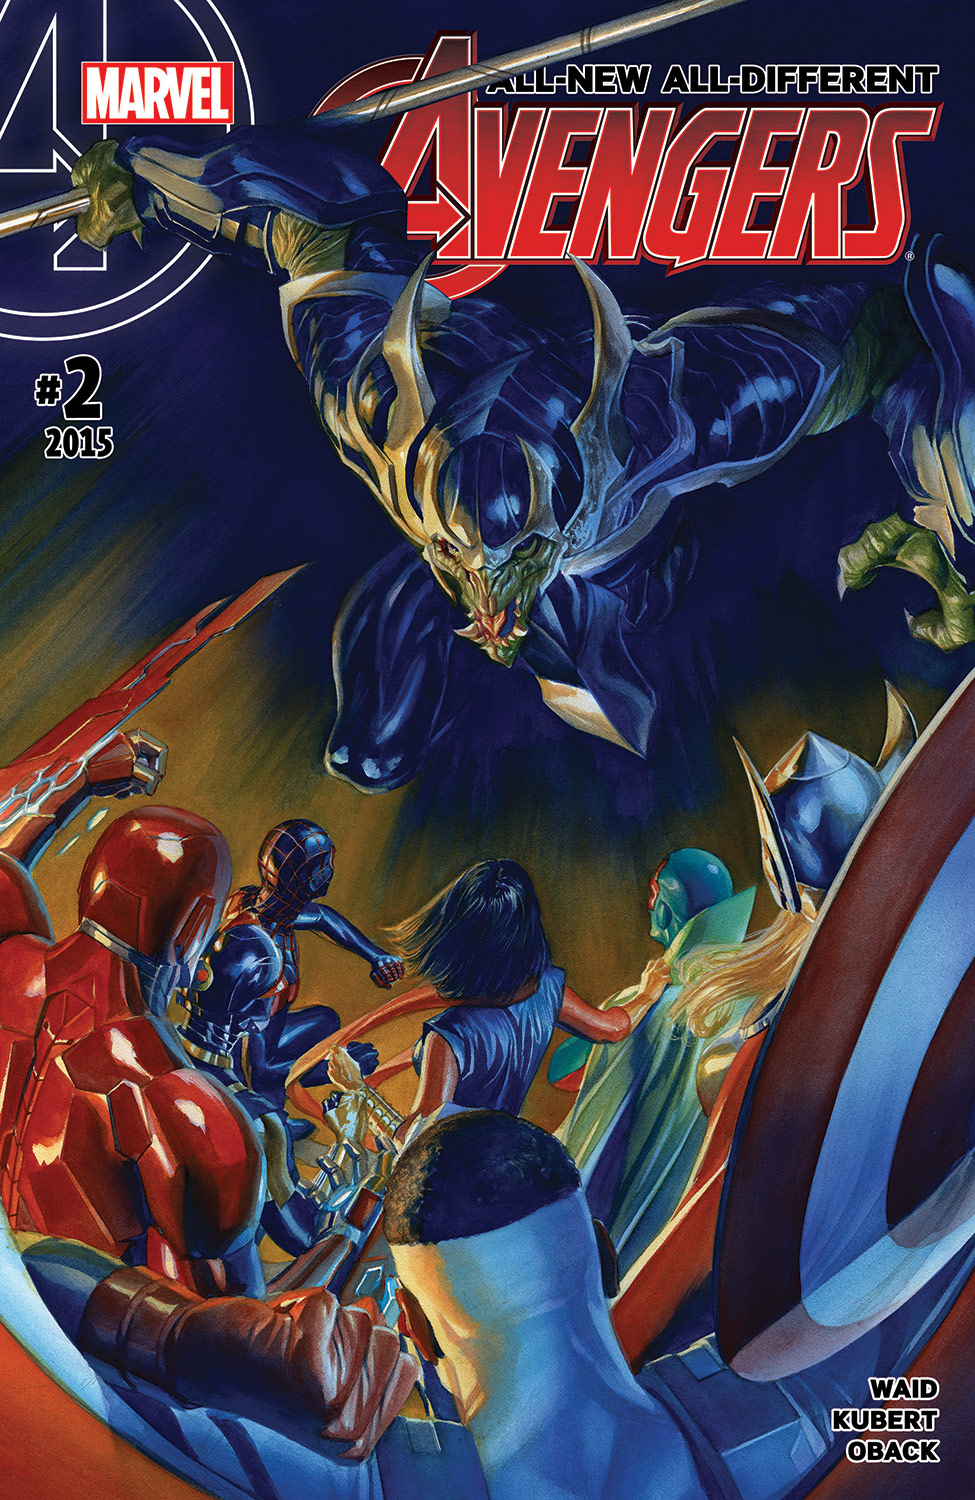 All-New, All-Different Avengers (2015) #2